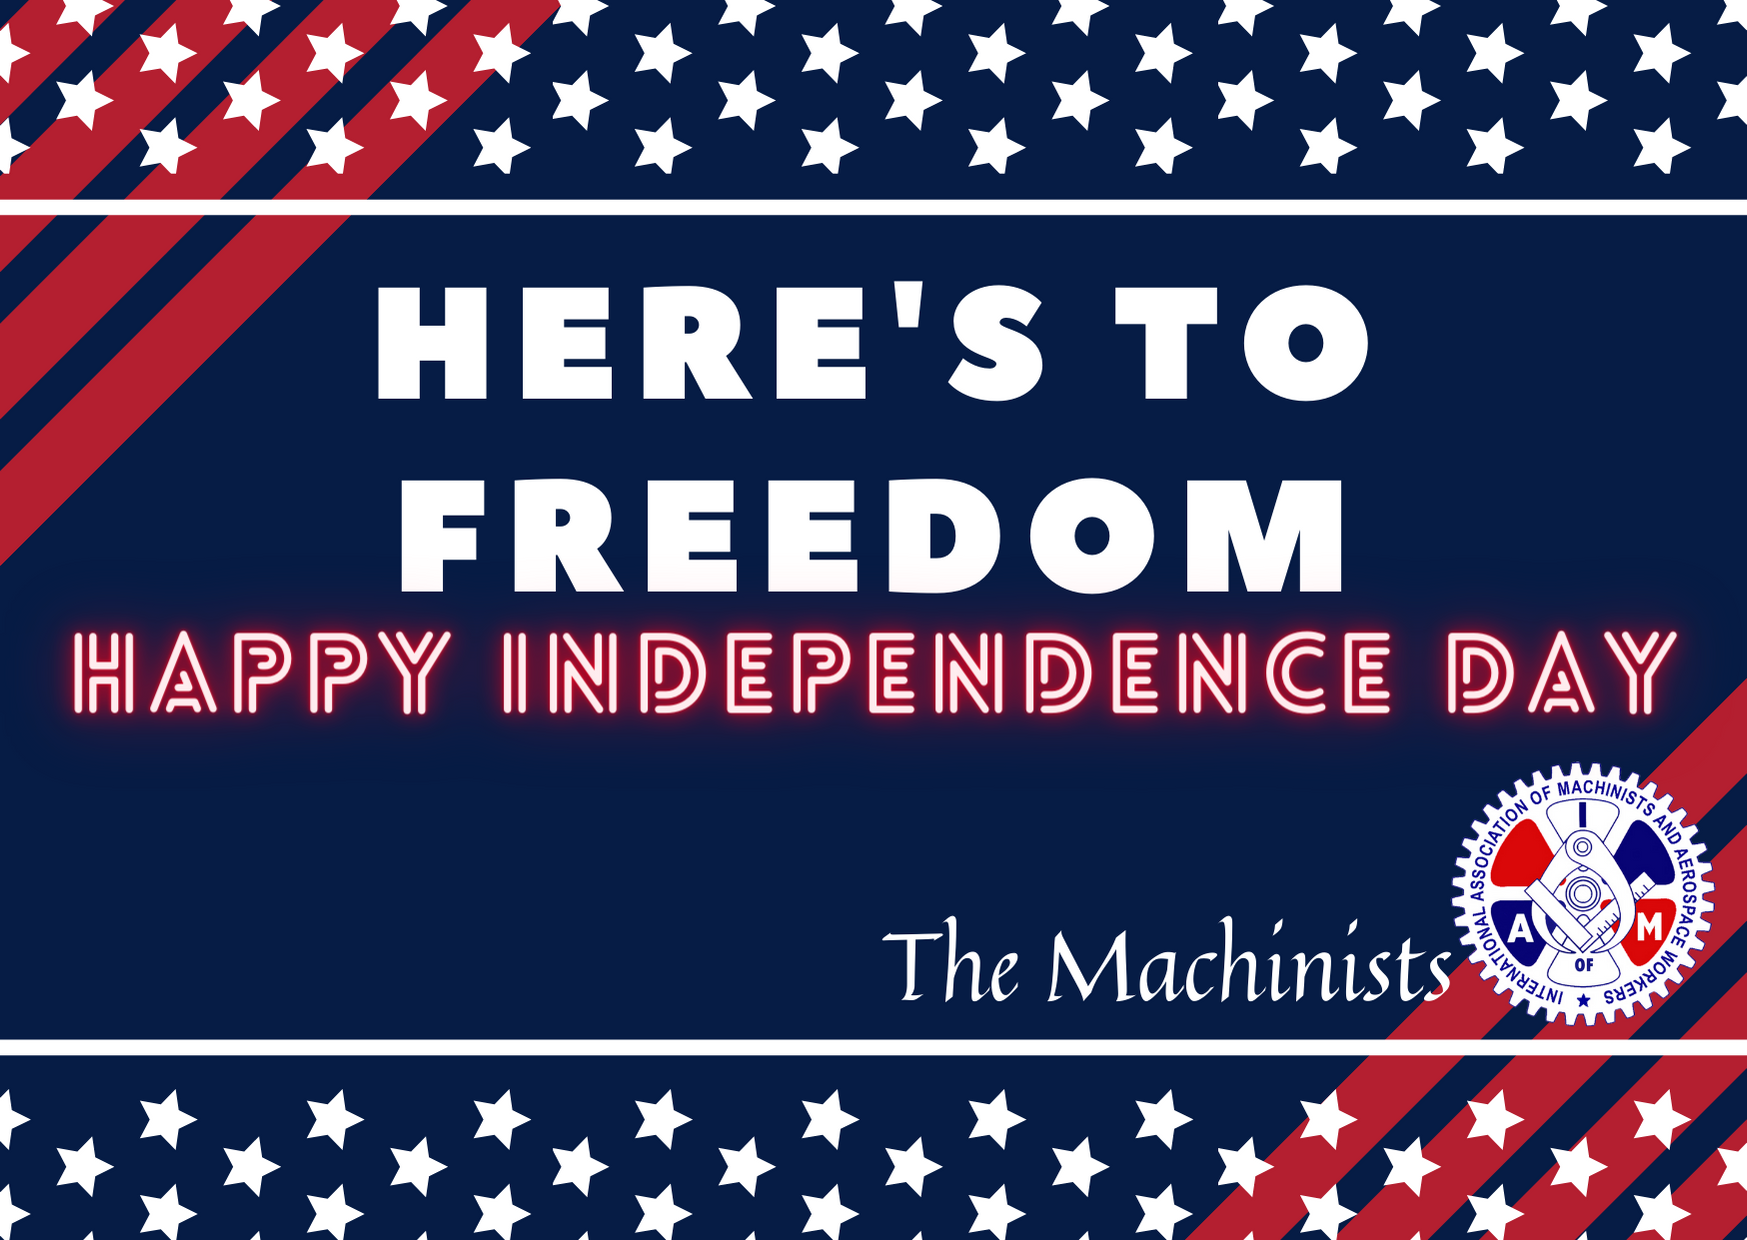 Celebrating Our Liberty, Equality and Opportunity